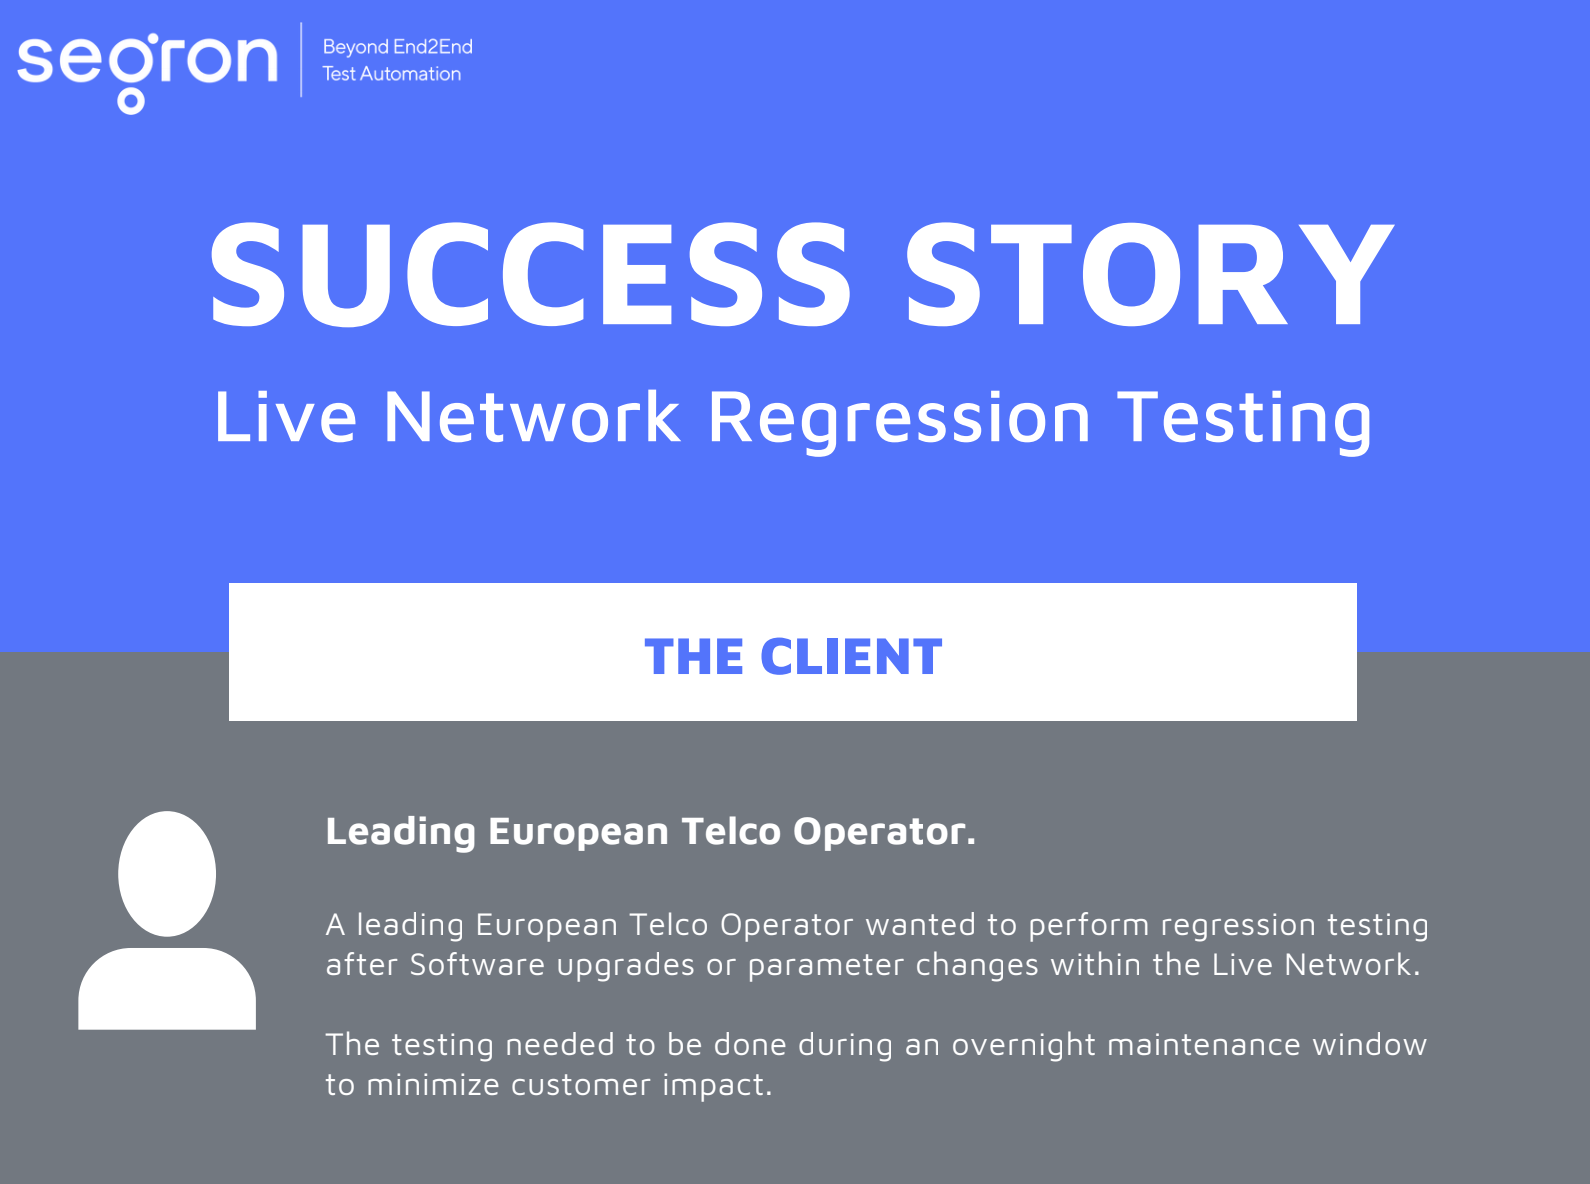 Learn More About Live Network Regression Testing